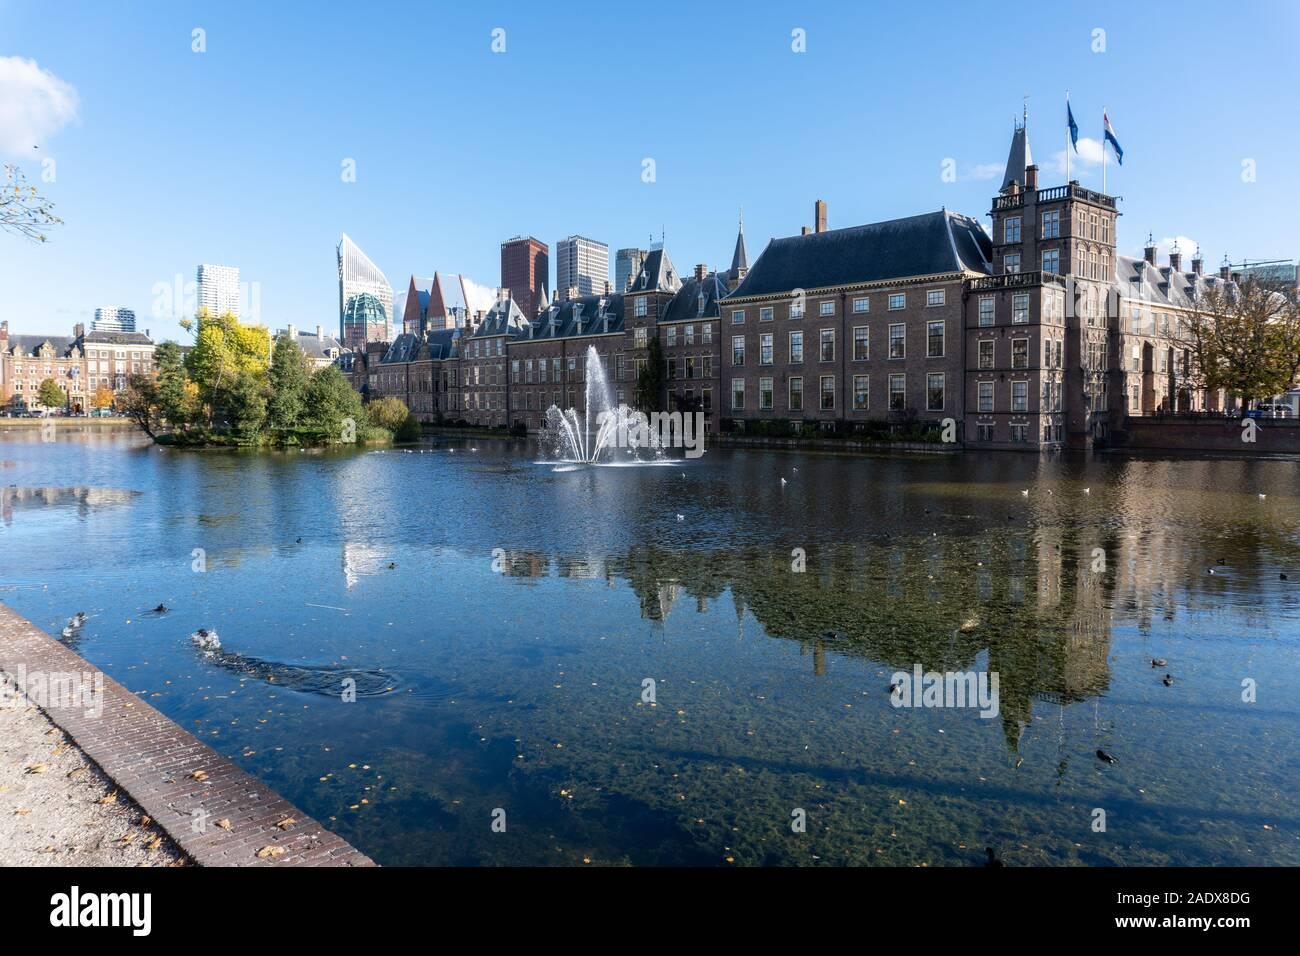 The Binnenhof, location of the Dutch government in The Hague Stock Photo